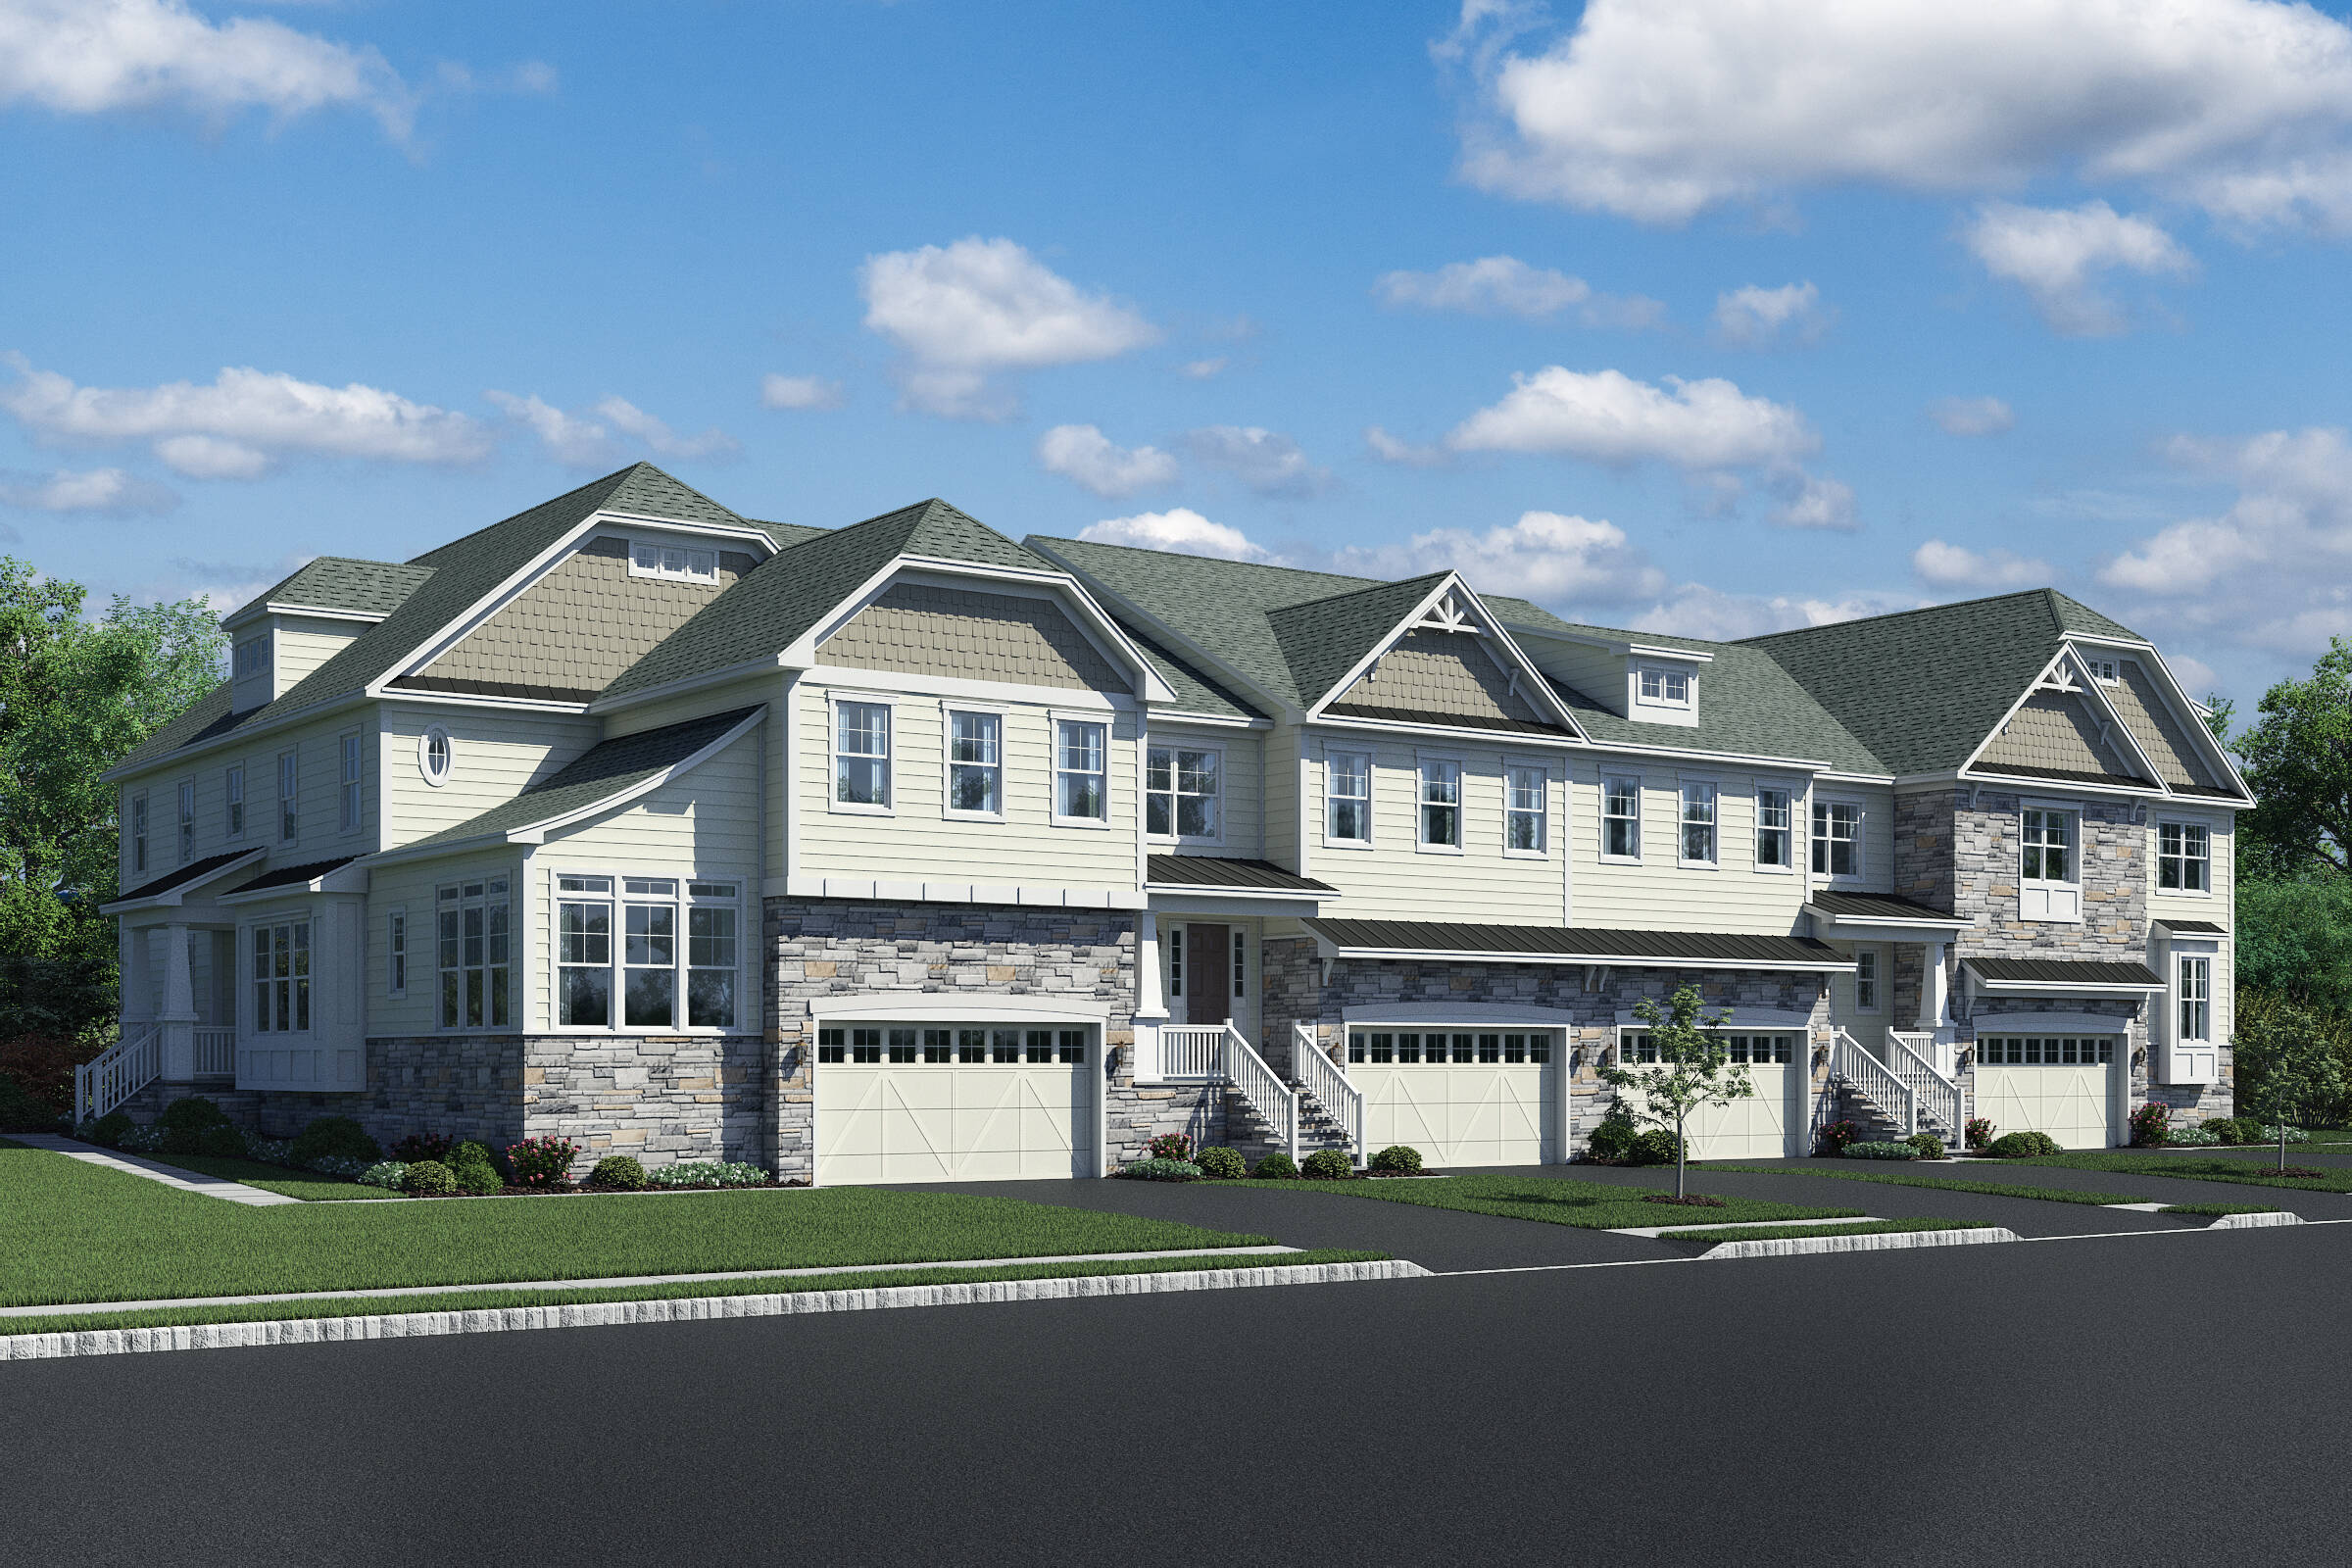 32 Foot Product New Townhomes Lincroft NJ